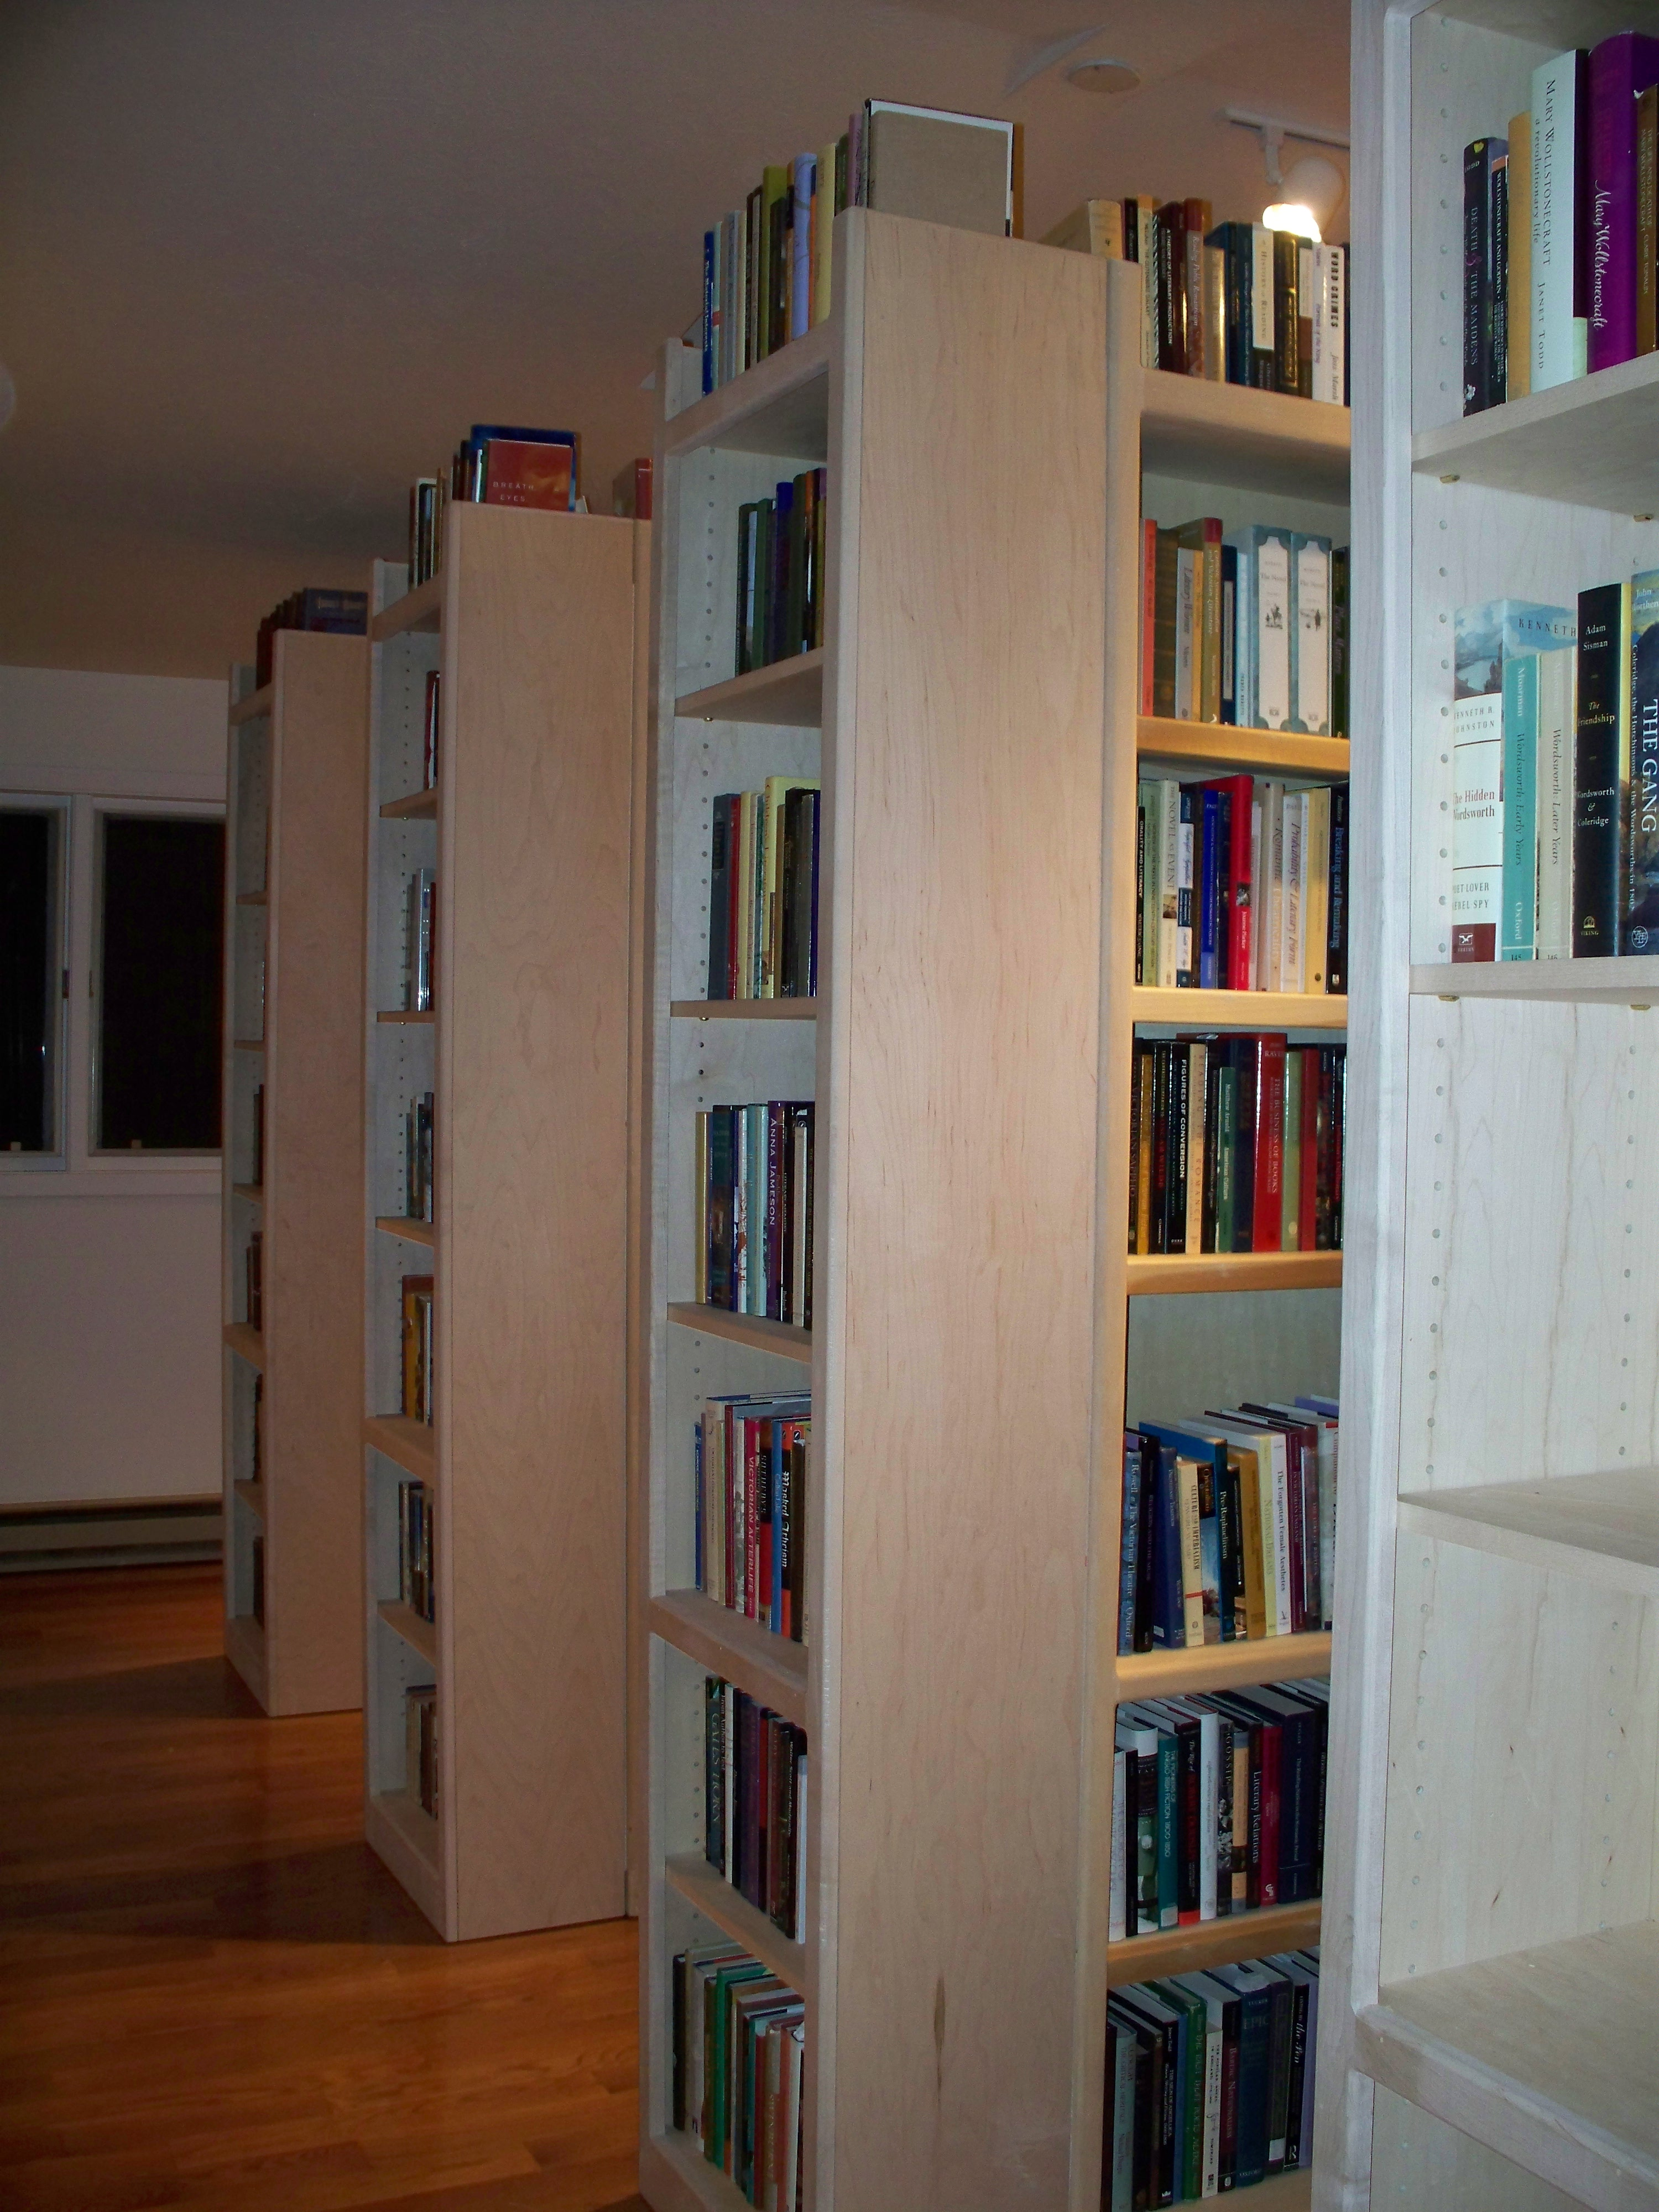 bookshelves walmart floor two kids ceiling west shelf elm thin essentials narrow home target room bookcase to bookshelf furniture spine amazon